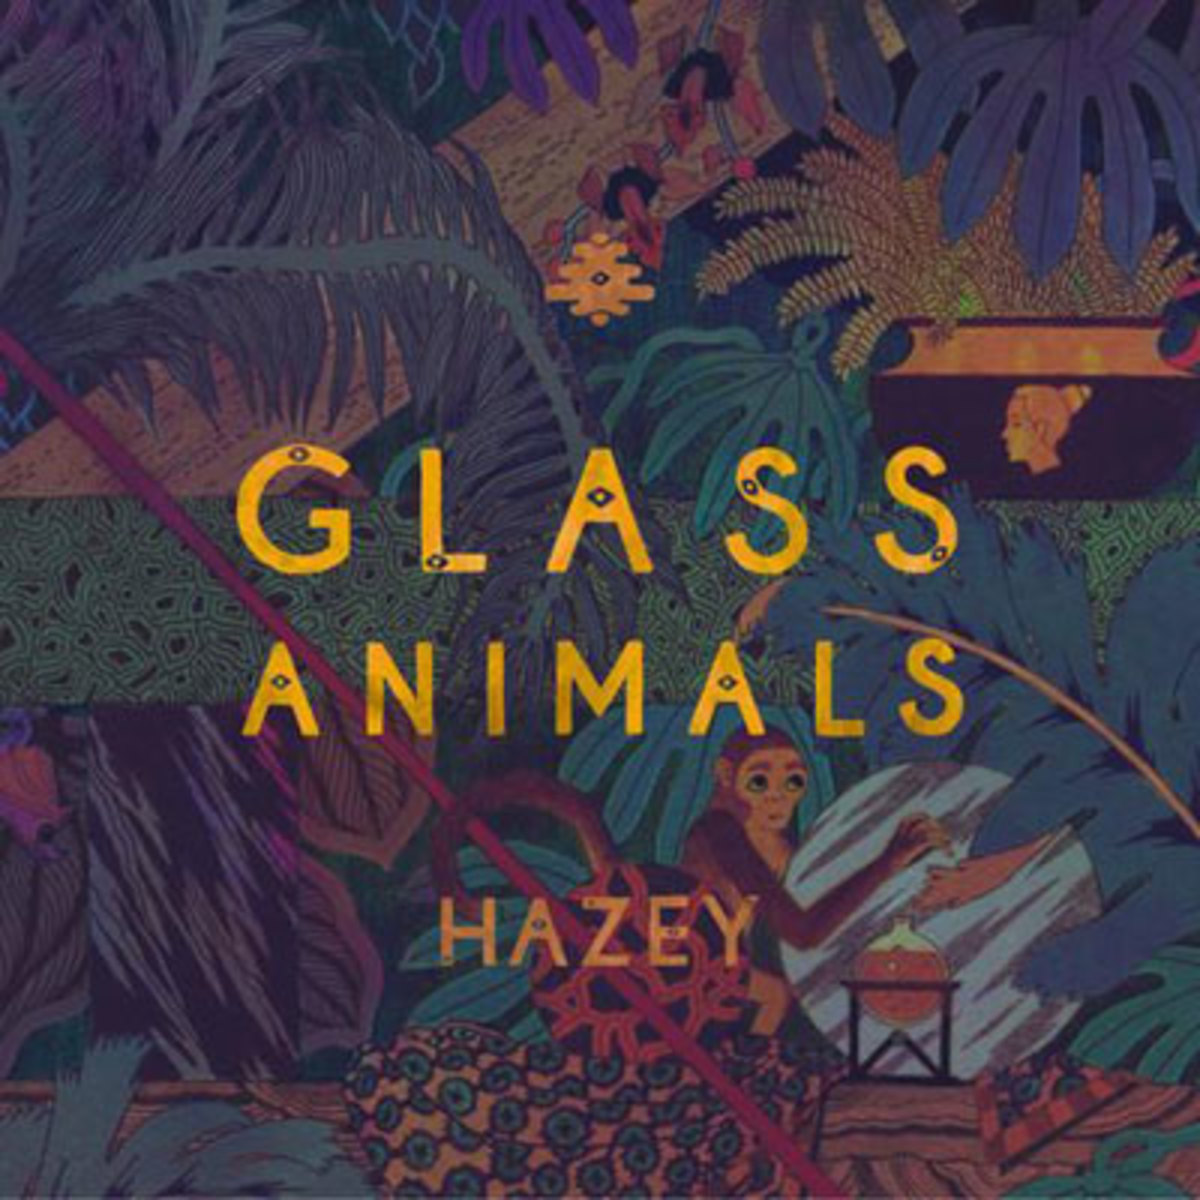 glassanimals-hazey.jpg